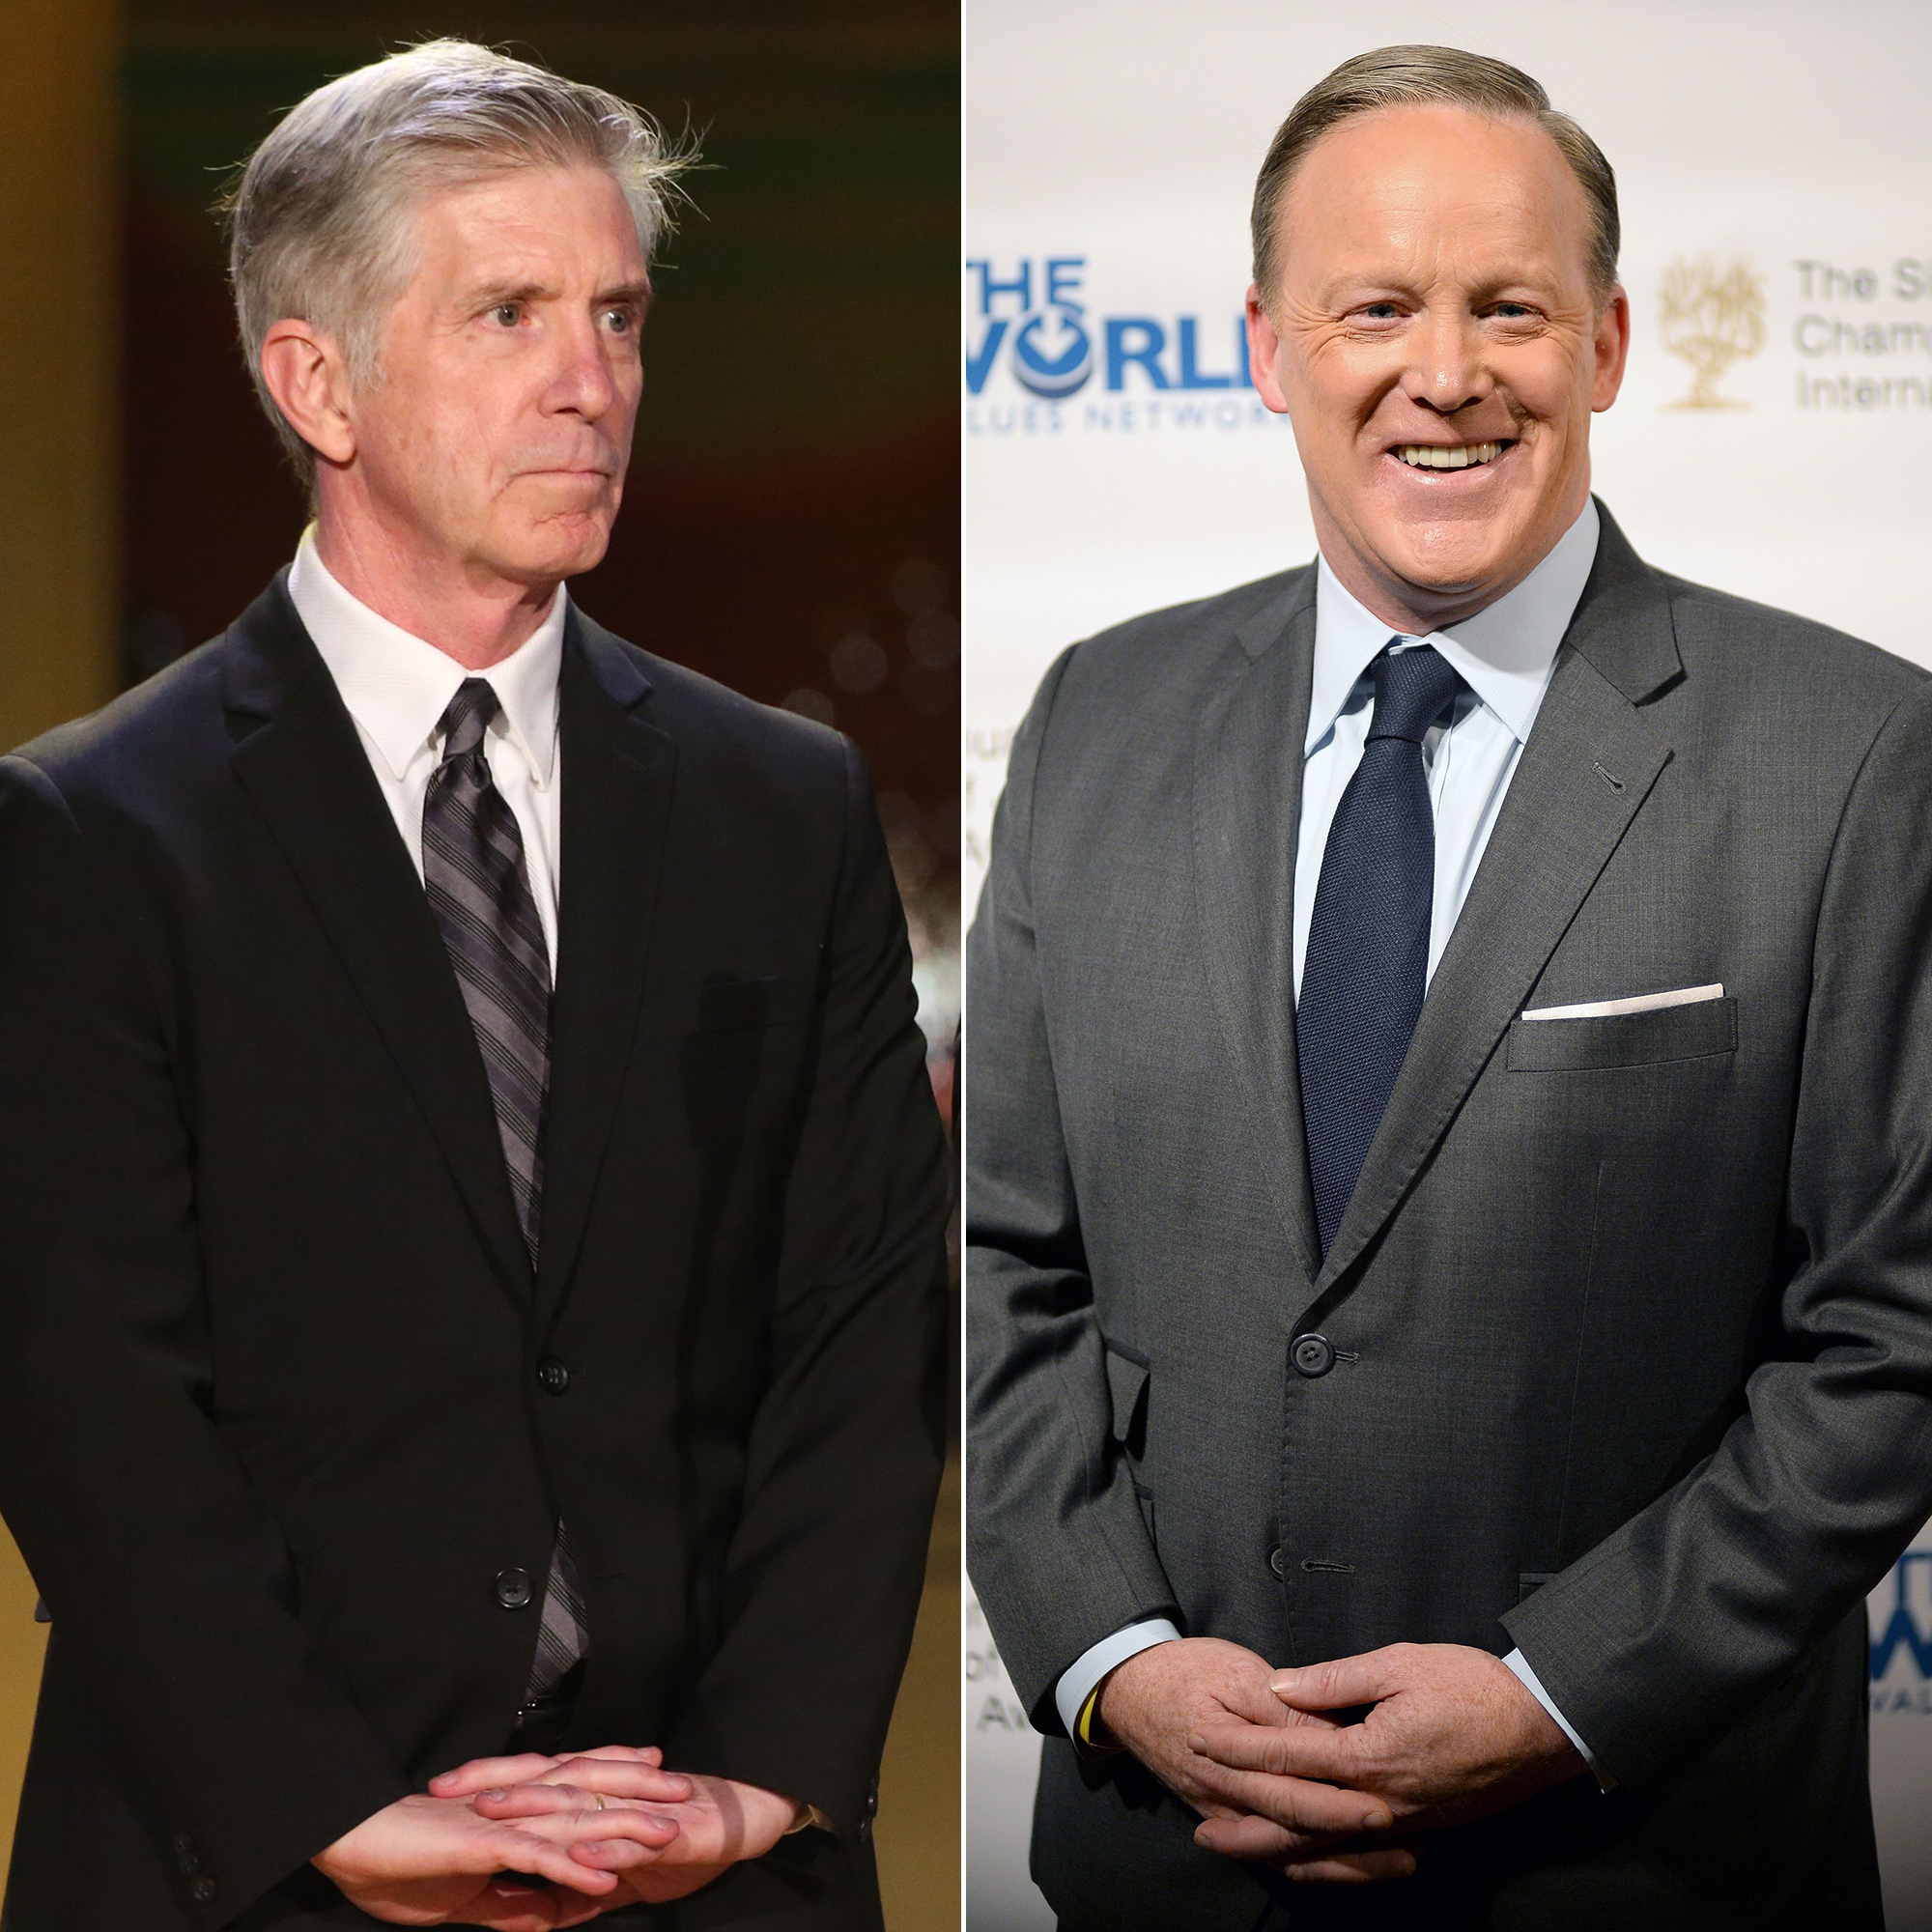 DWTS' Host Tom Bergeron Disagrees With Casting Sean Spicer